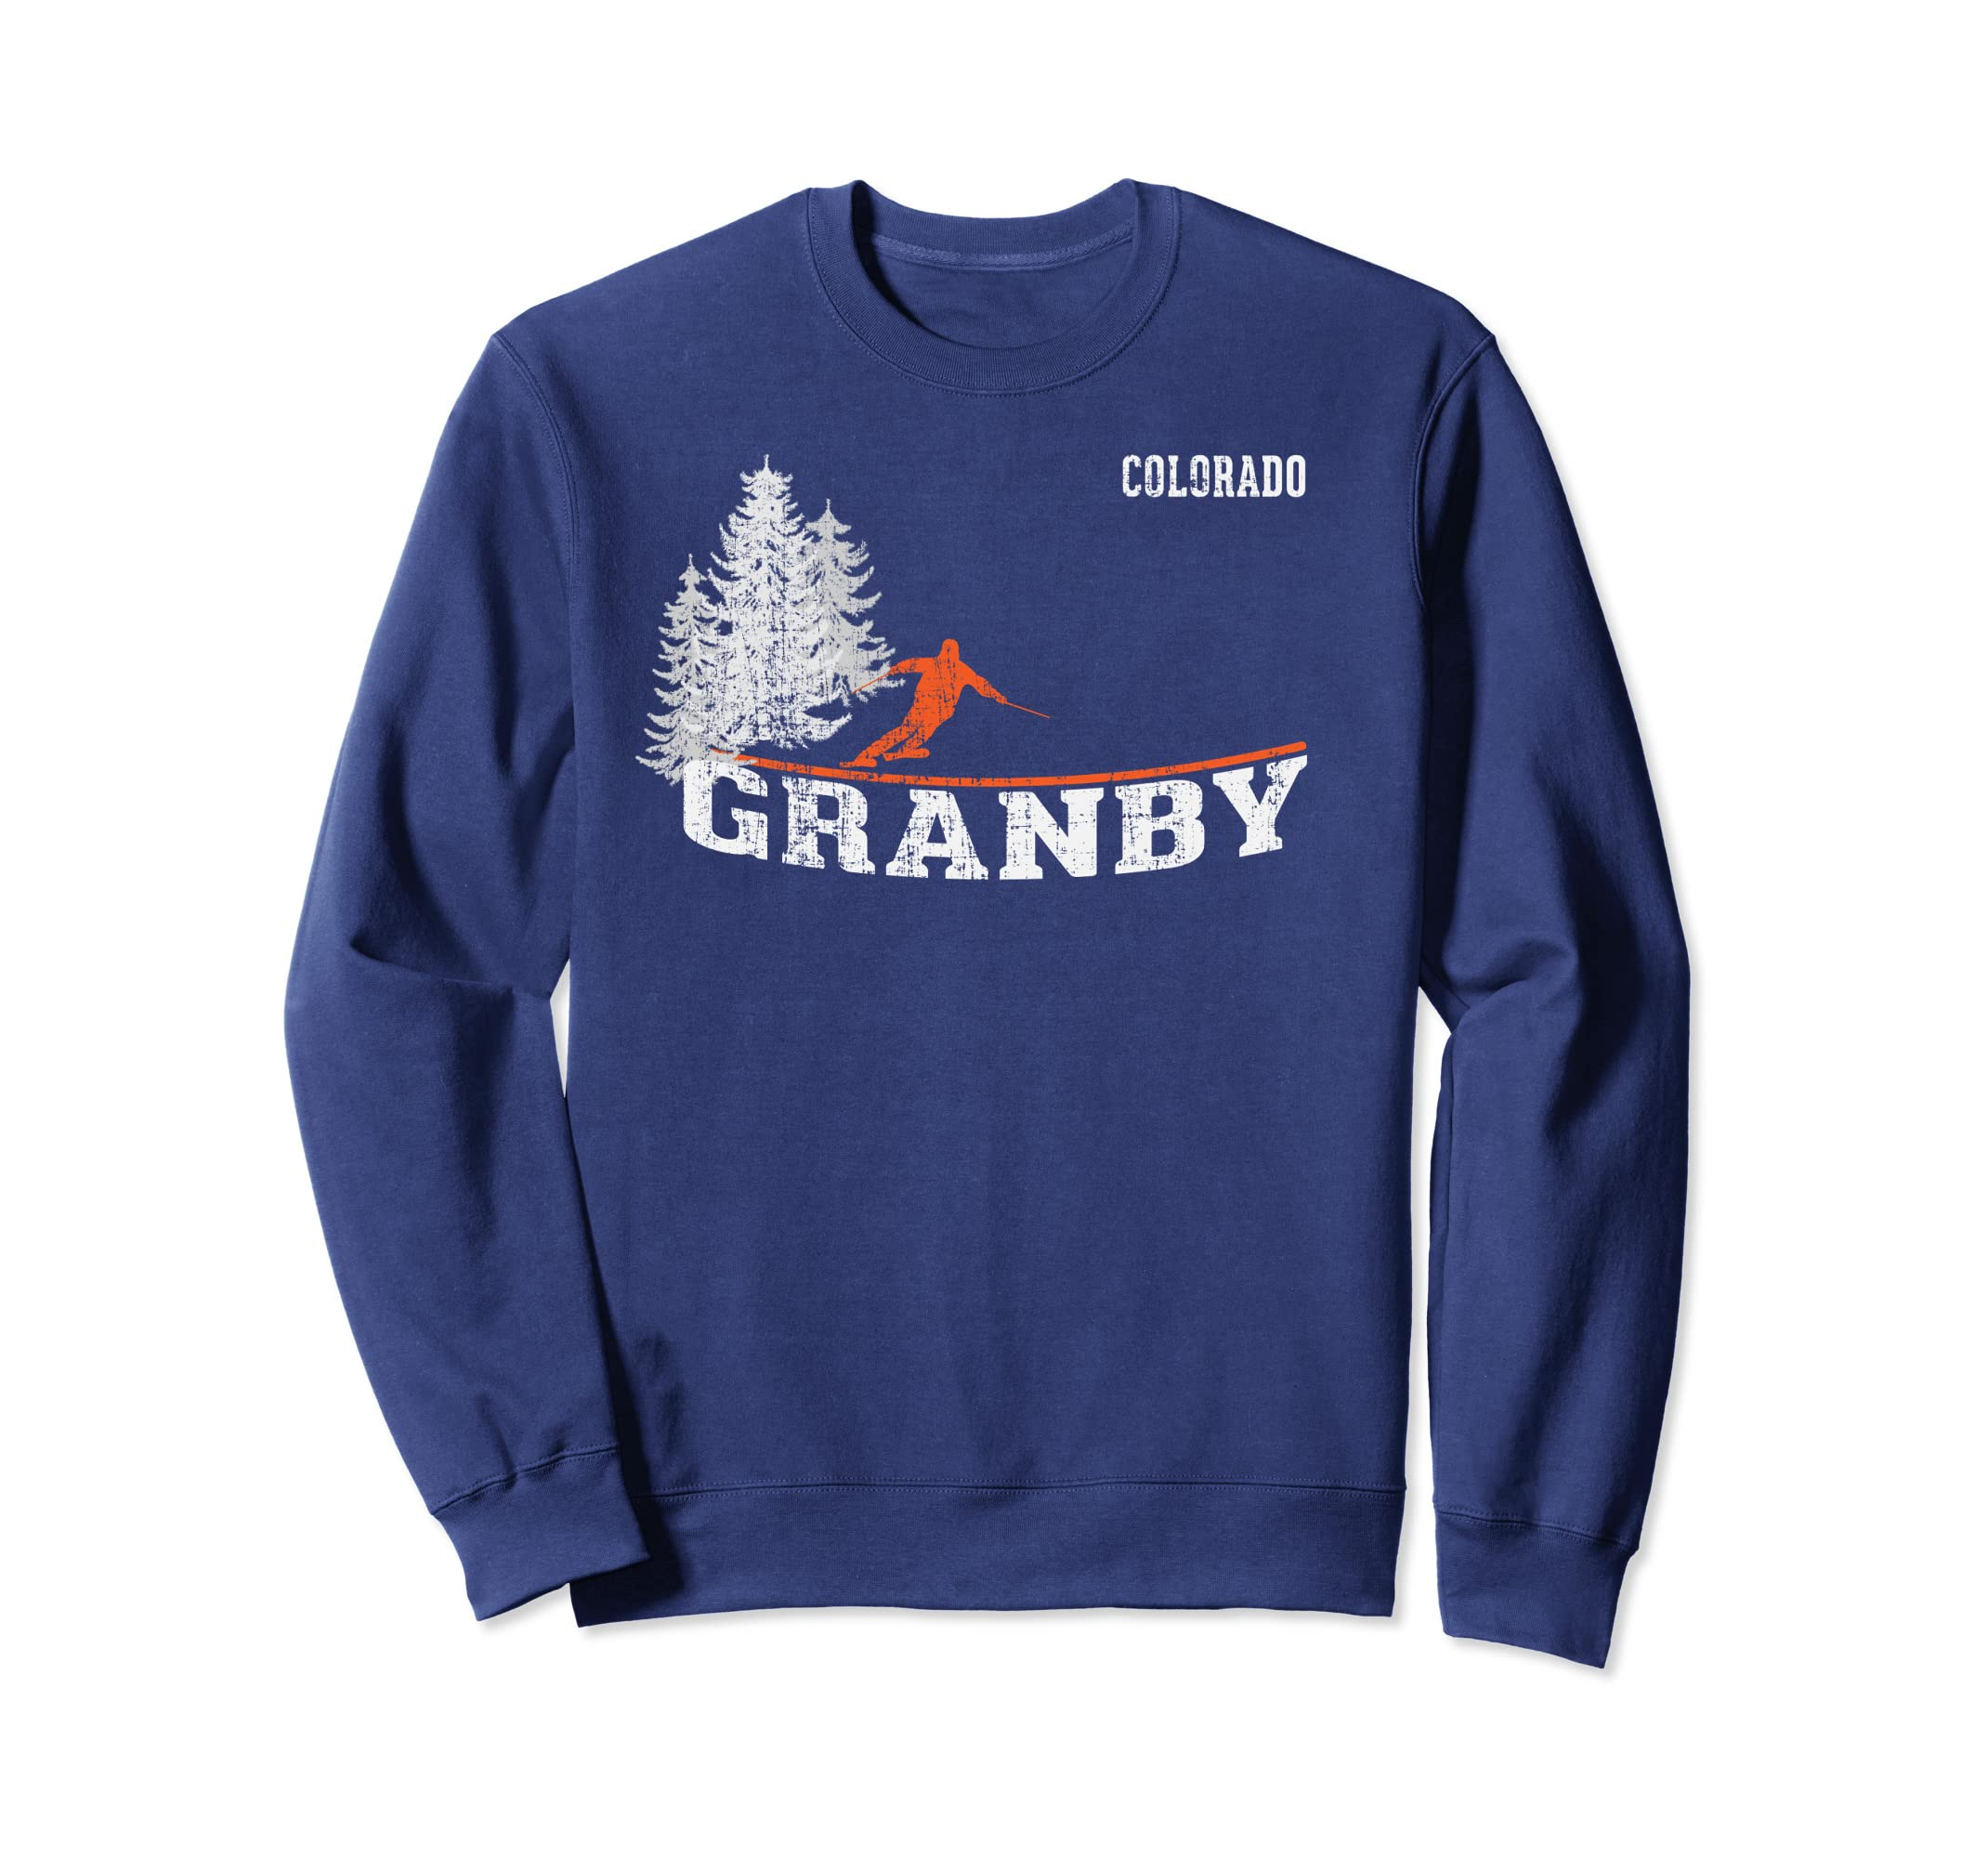 1980s Style Granby CO Long Sleeve Skiing Shirt-Teehay